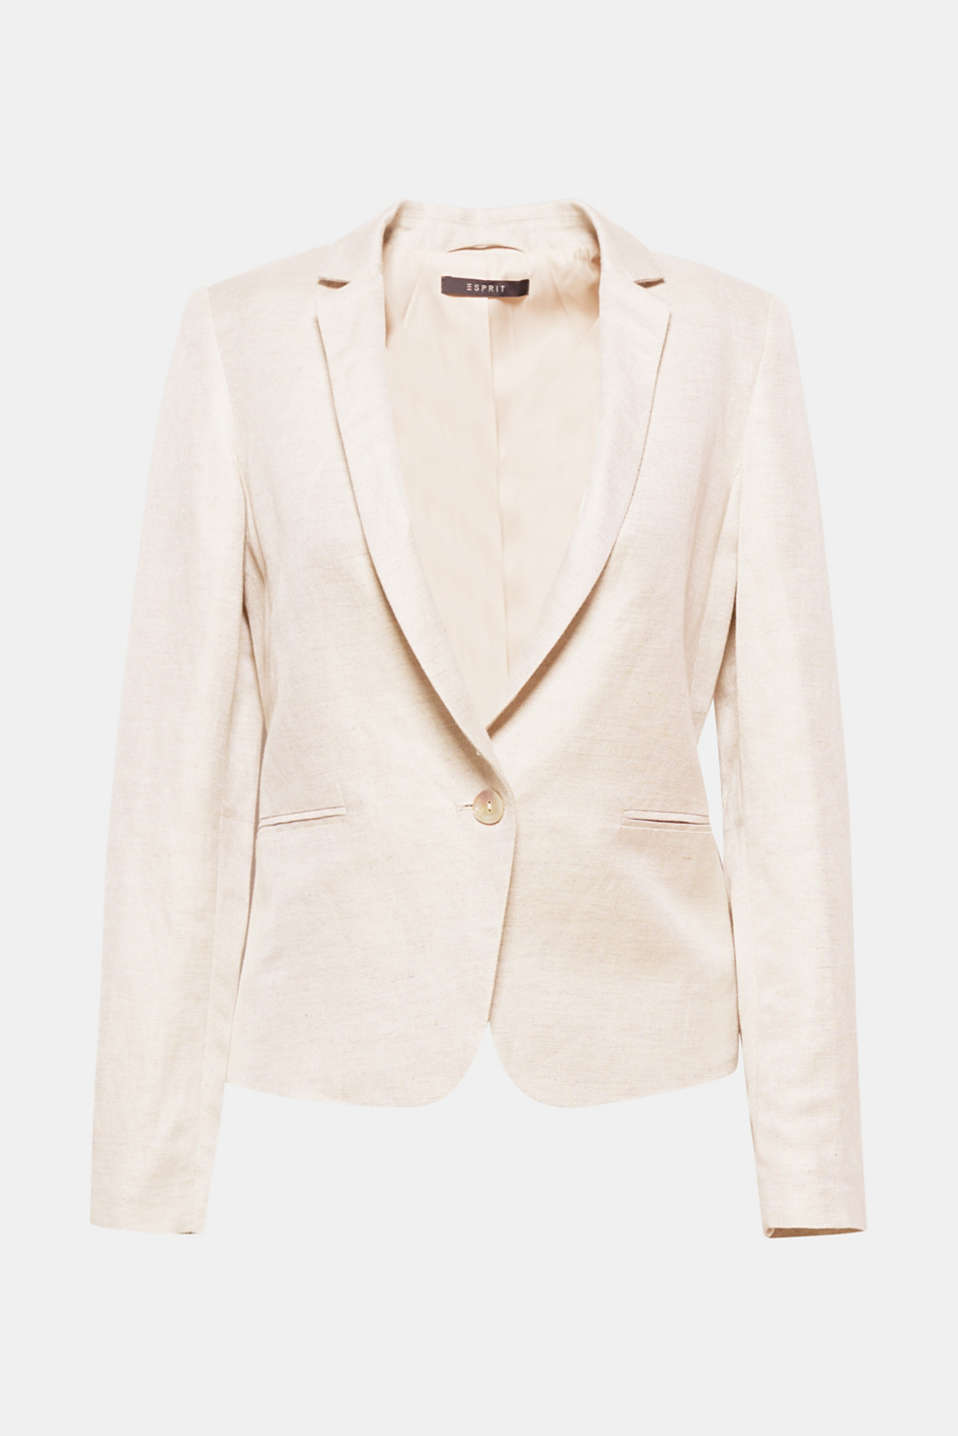 This fitted 1-button piece in blended linen is the perfect summer blazer with business chic!